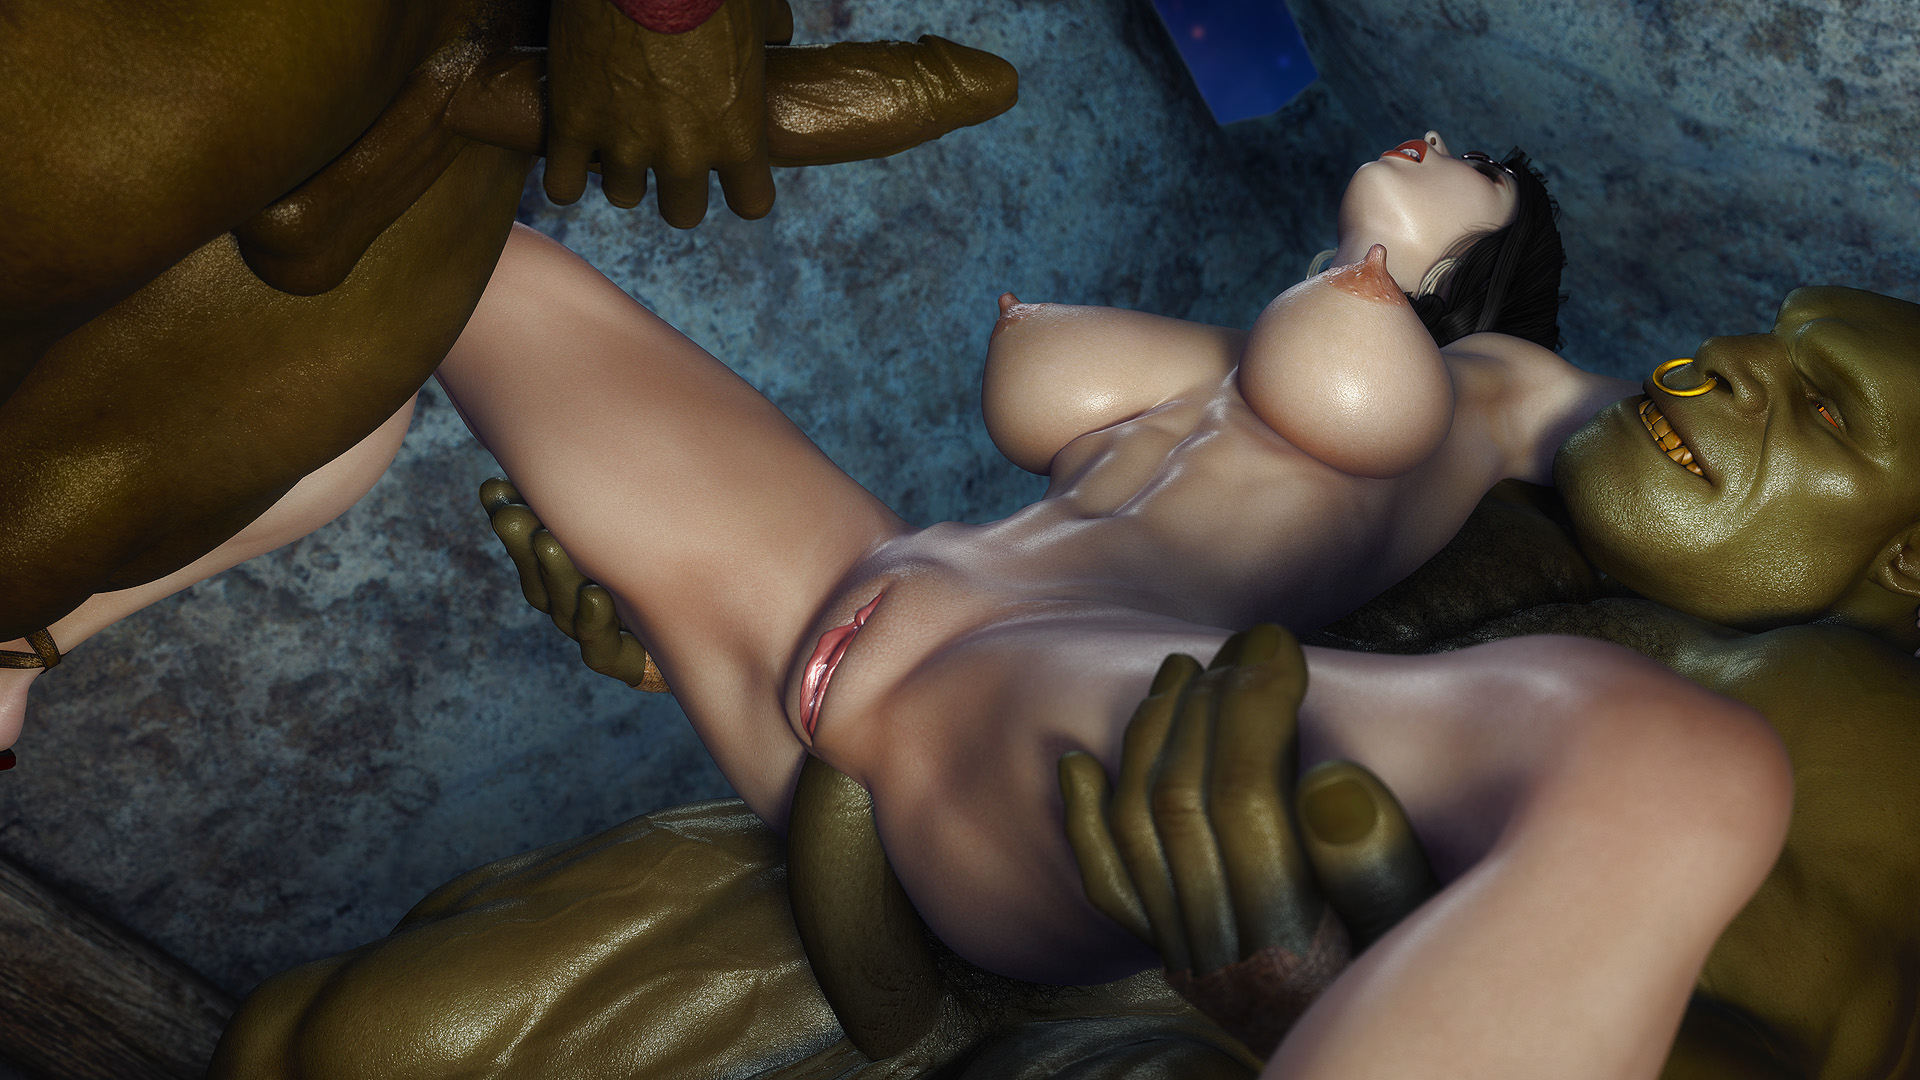 3d animated free porn monster android xxx stripper